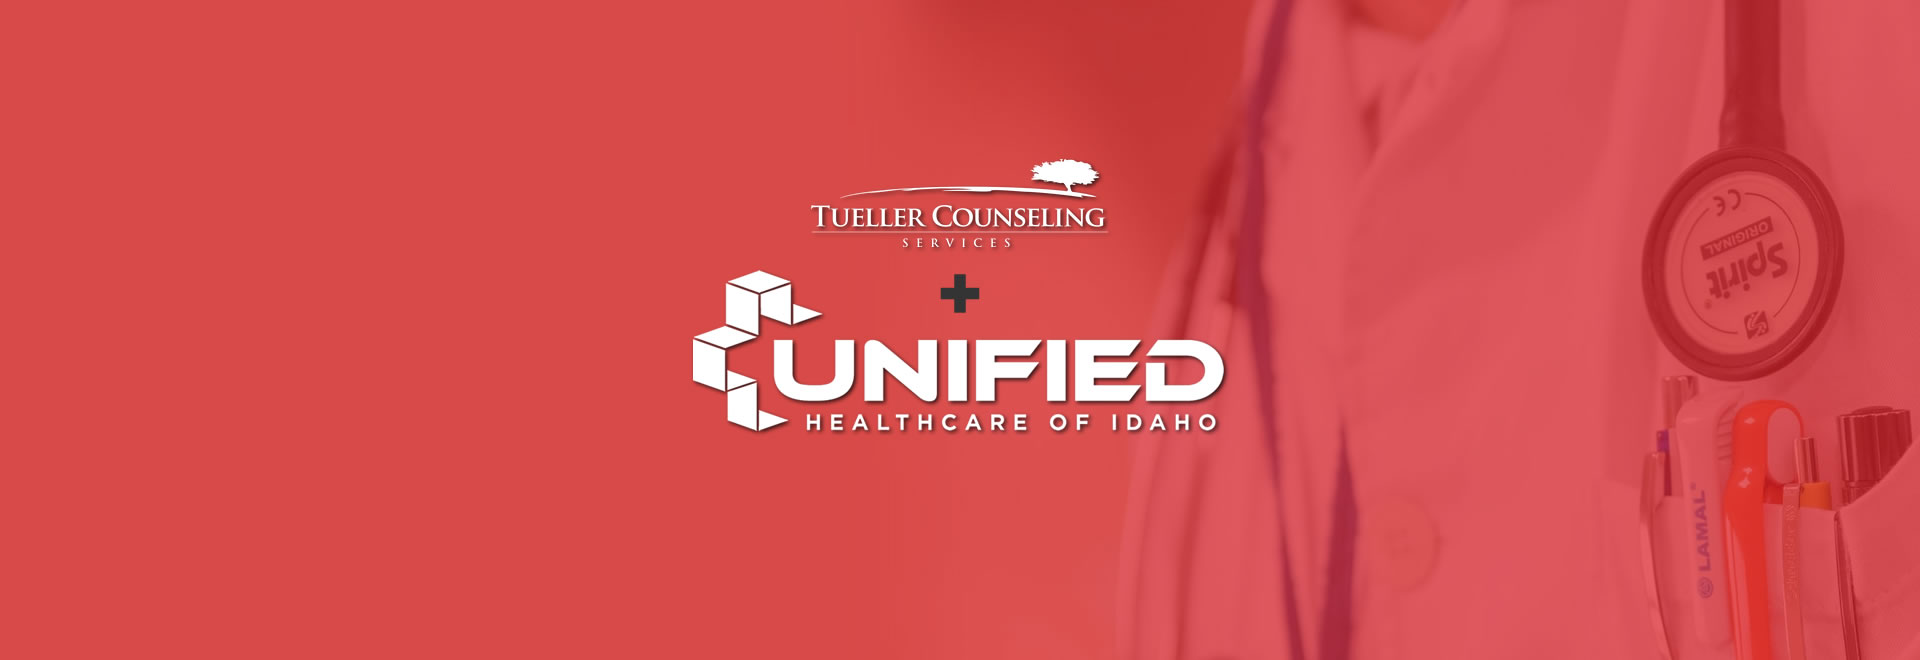 unified health care of idaho